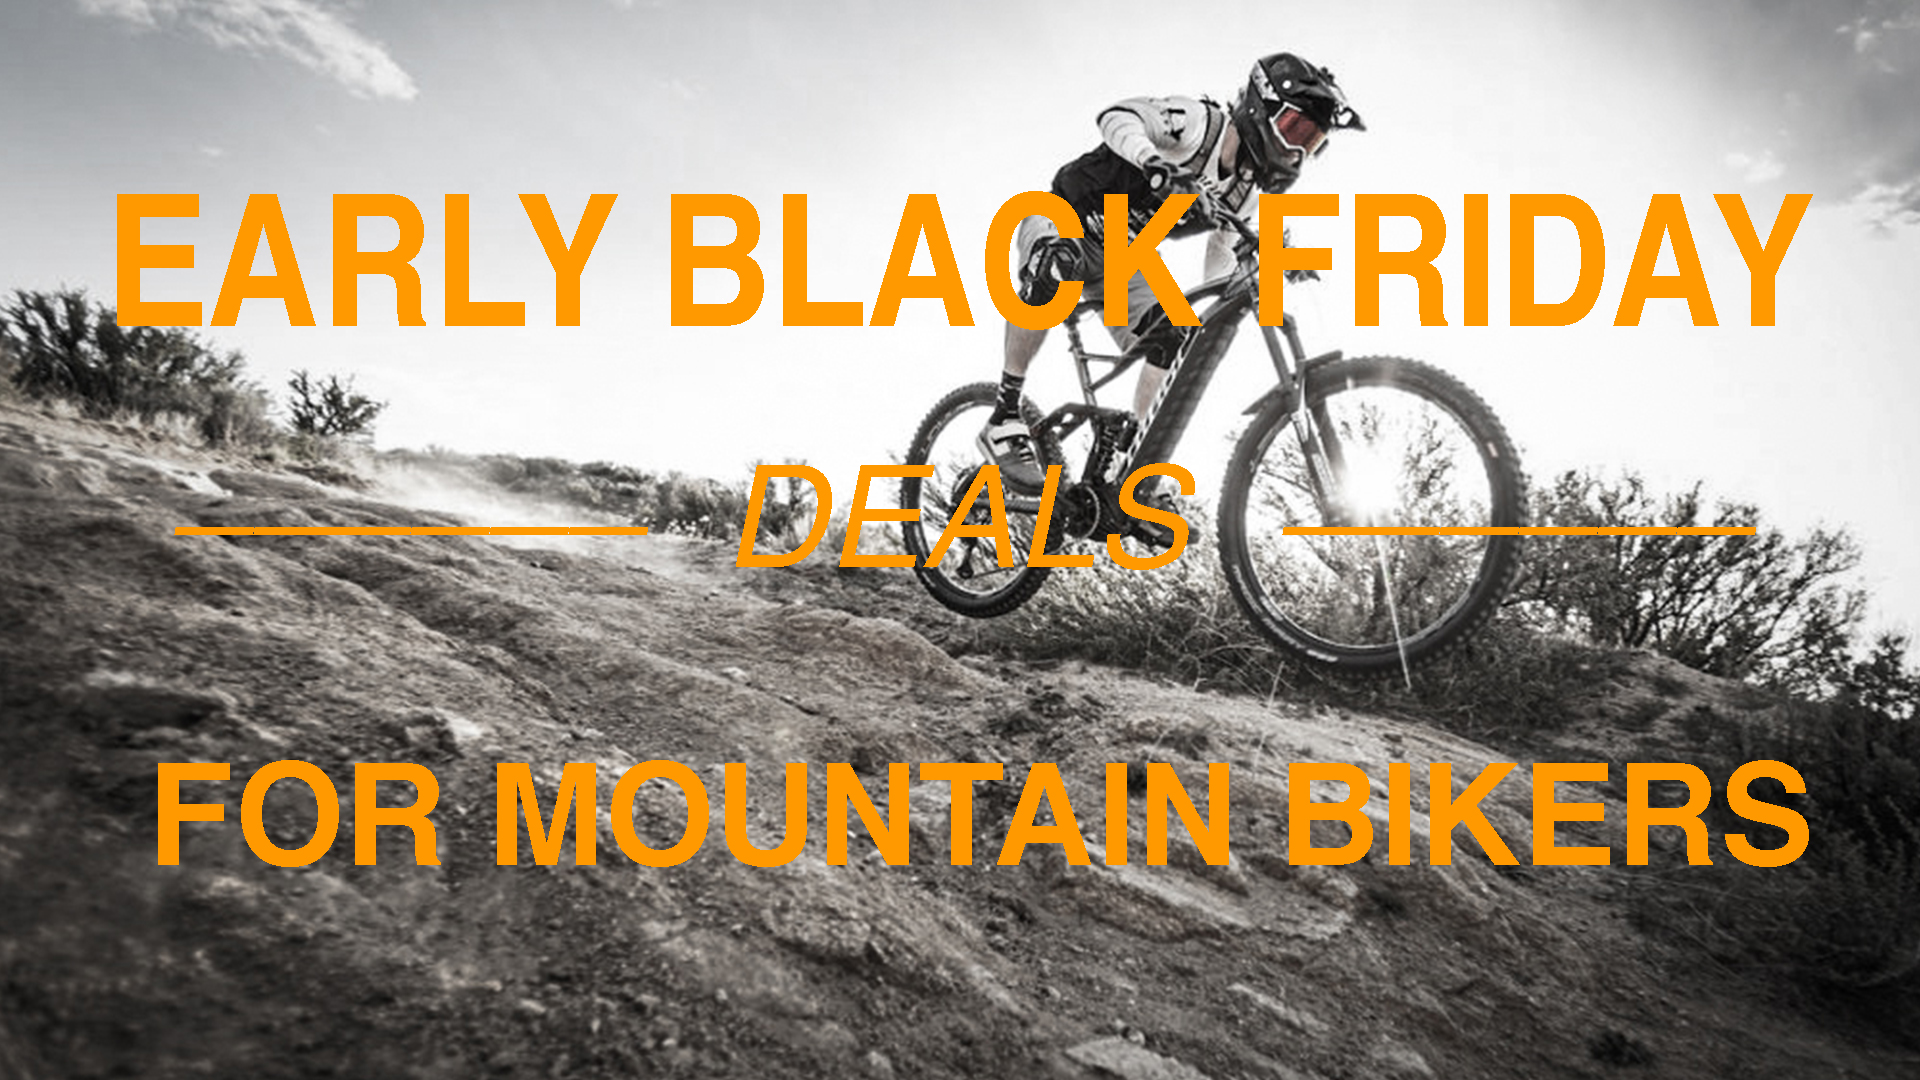 No need to wait until Black Friday or Cyber Monday. These great early Black Friday bike deals are available now!